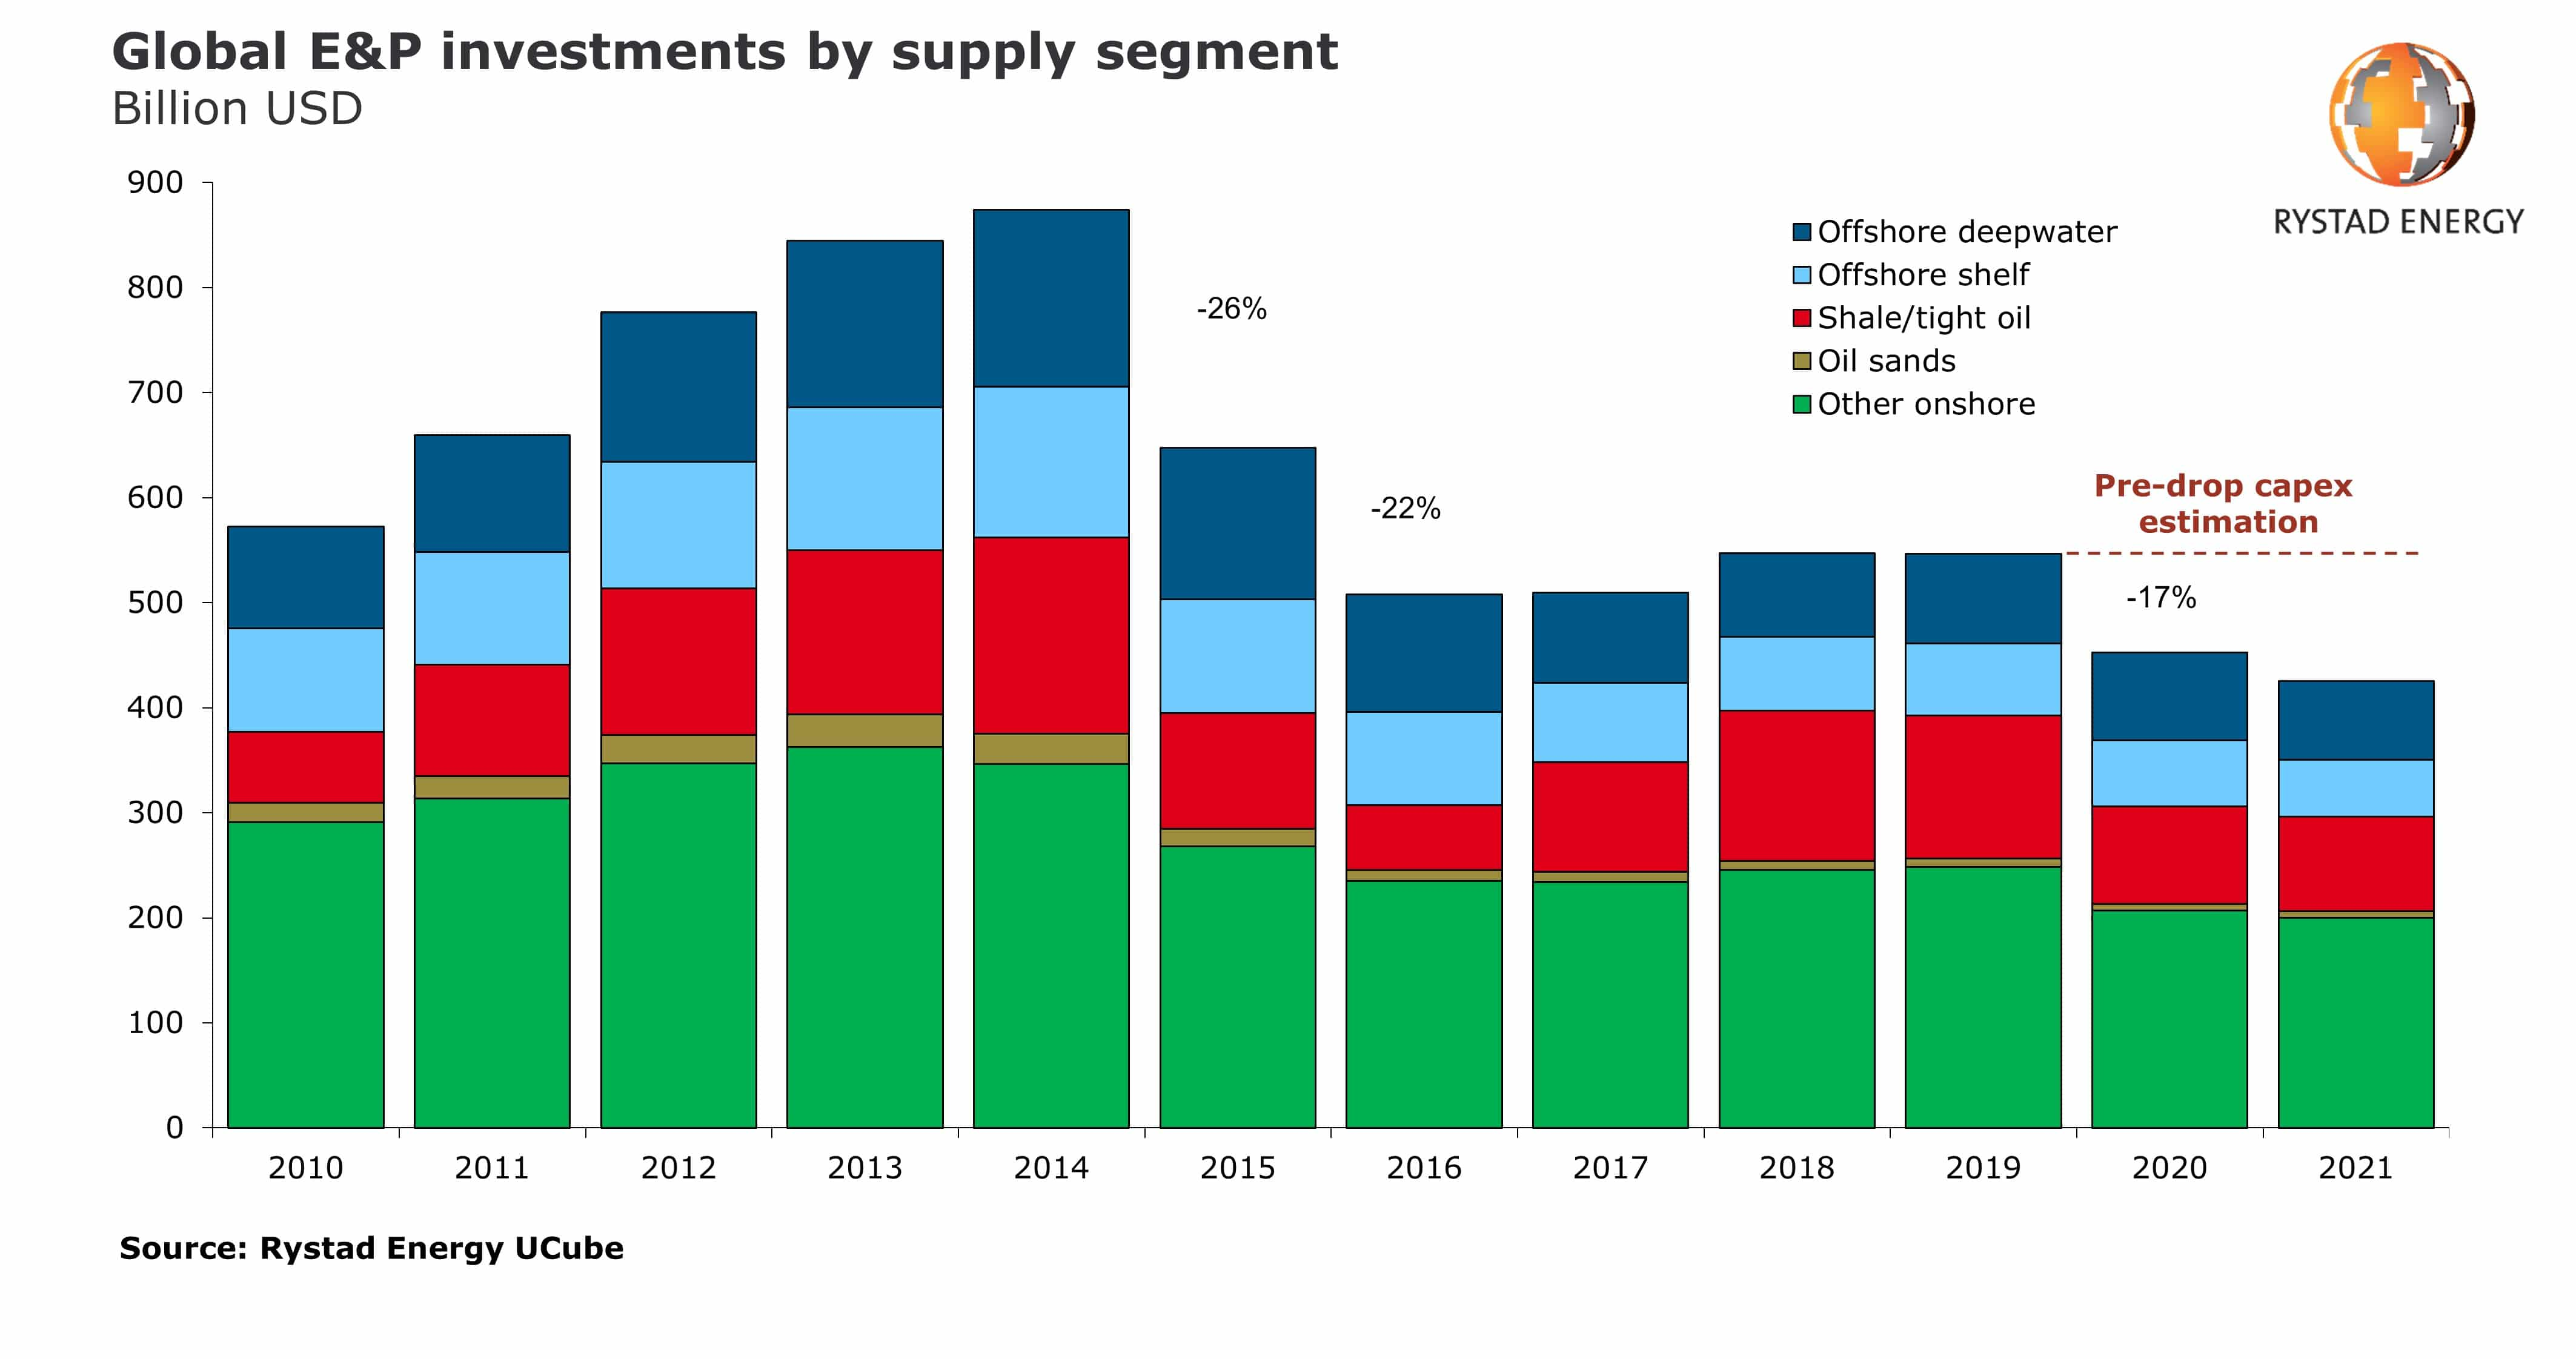 Rystad Energy expects a 17 % CAPEX decline in 2020